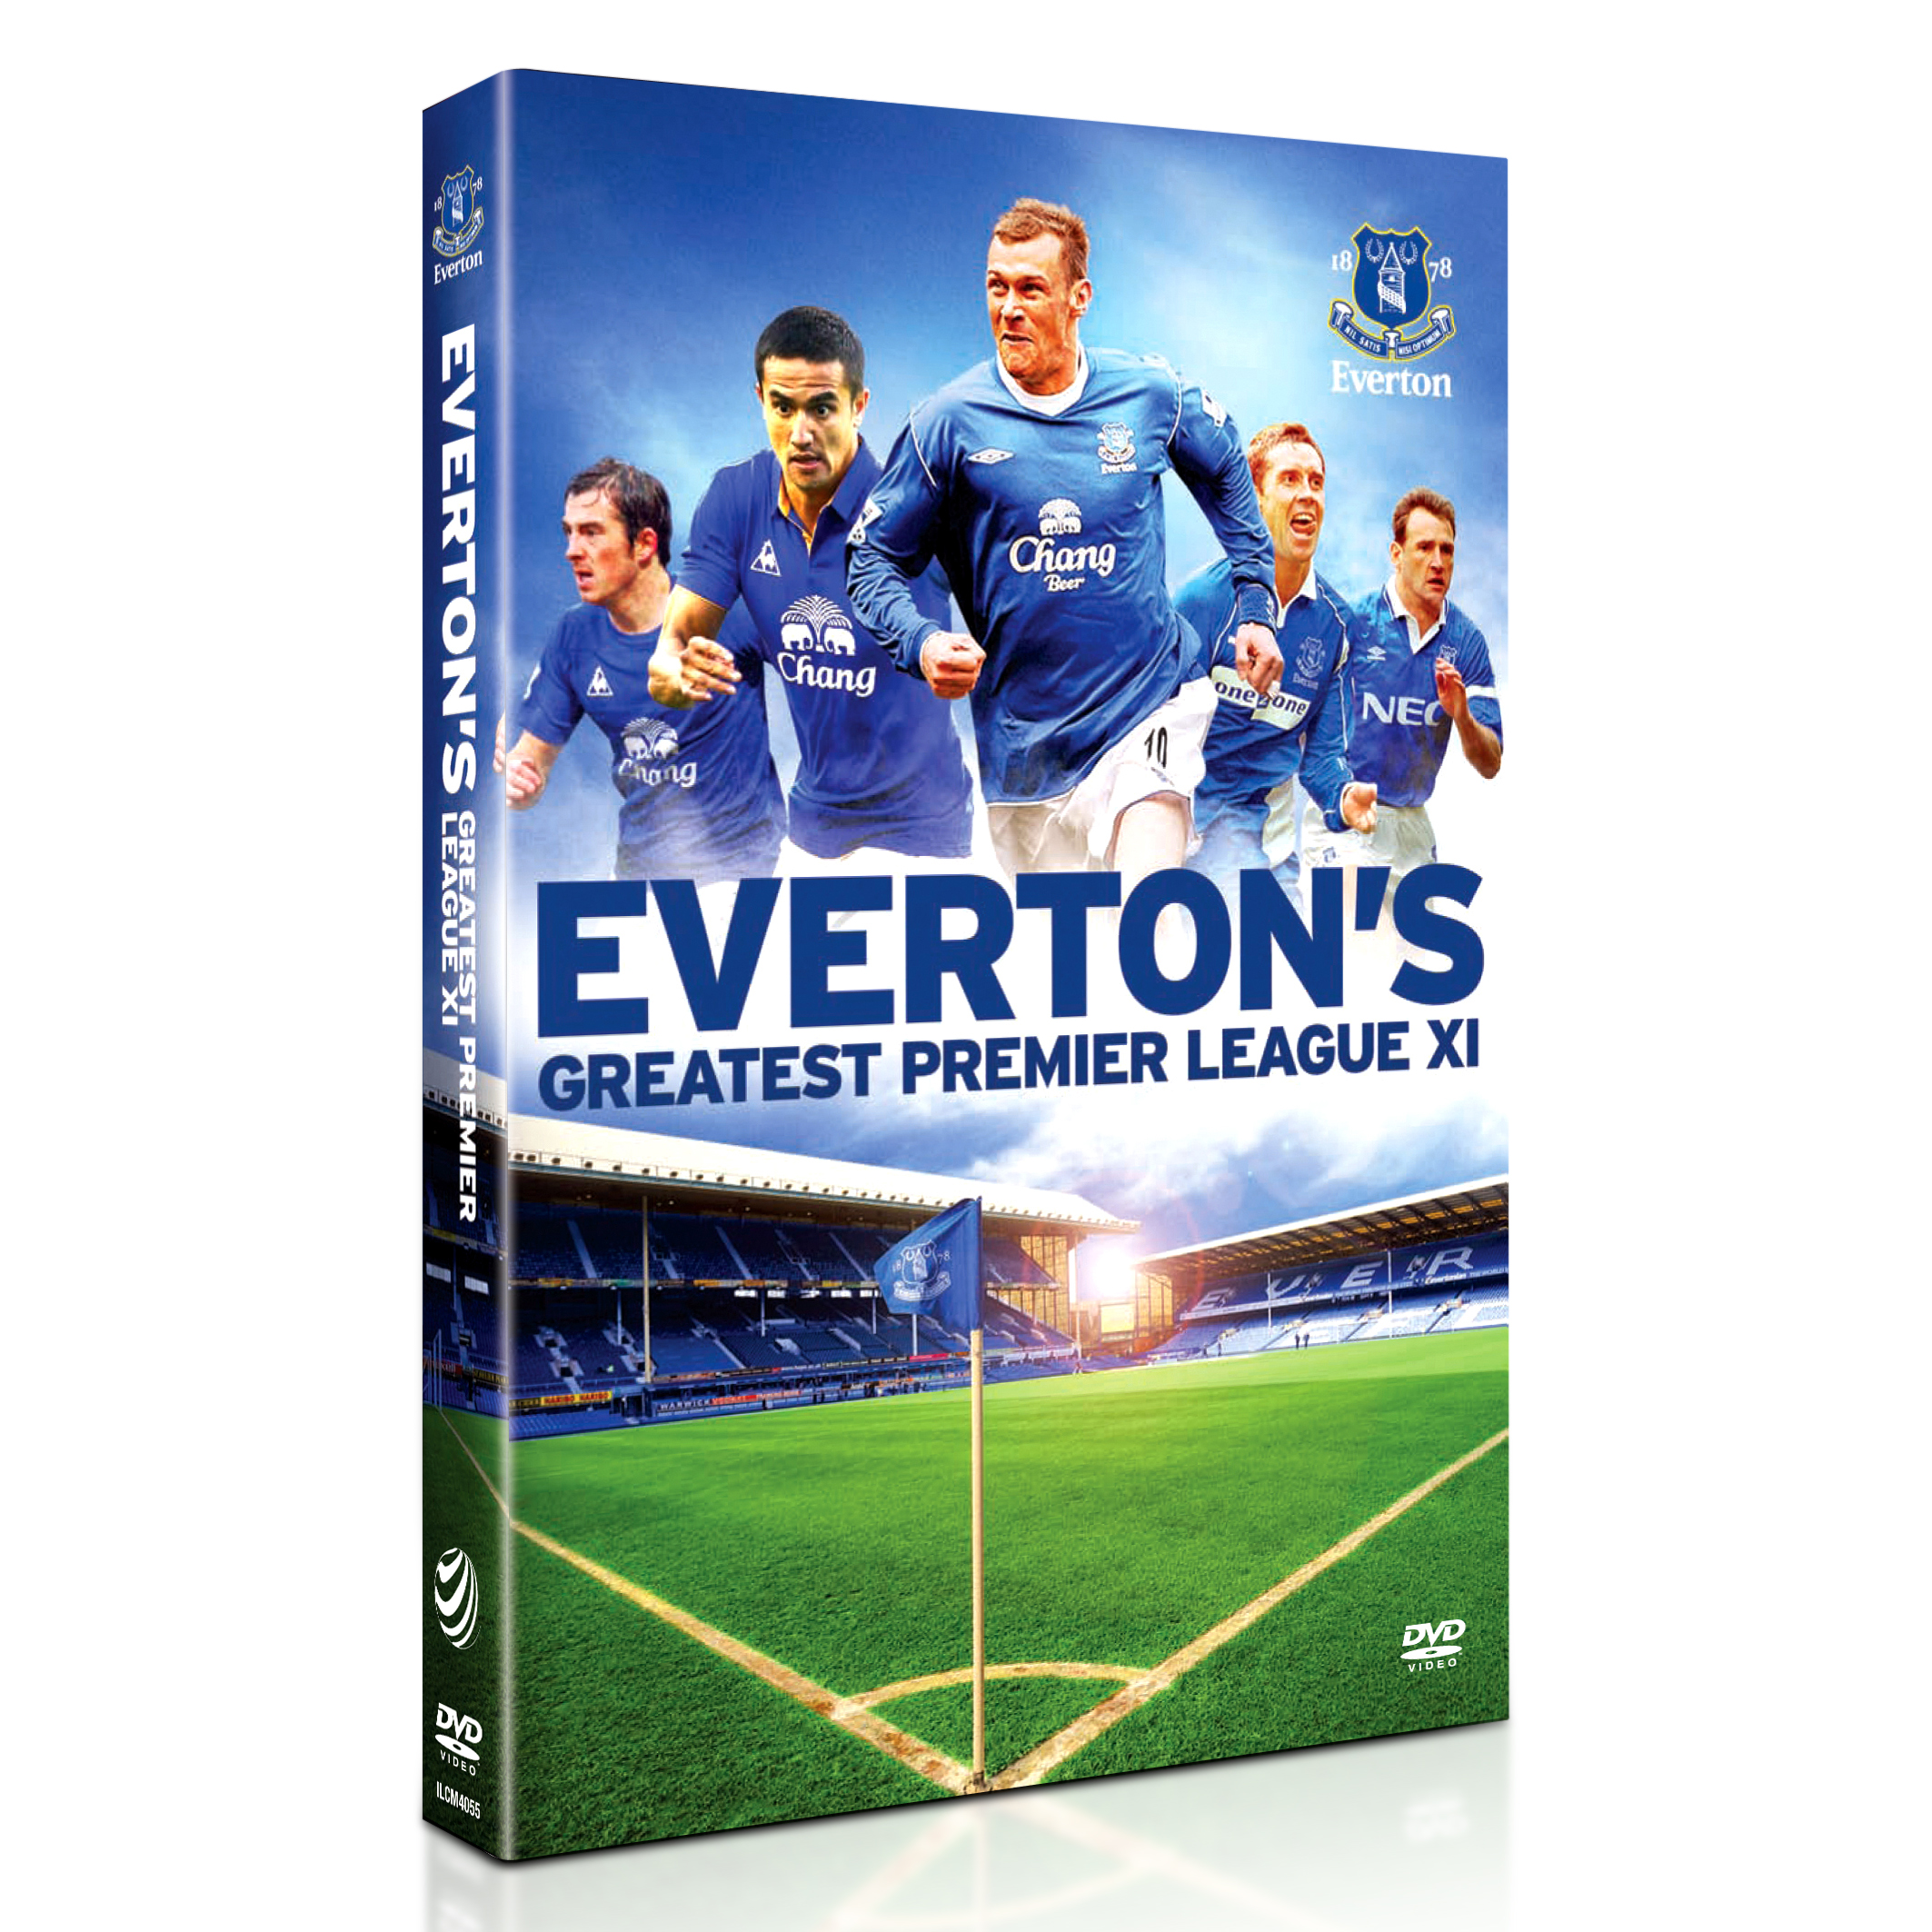 Everton Greatest Premier League XI DVD